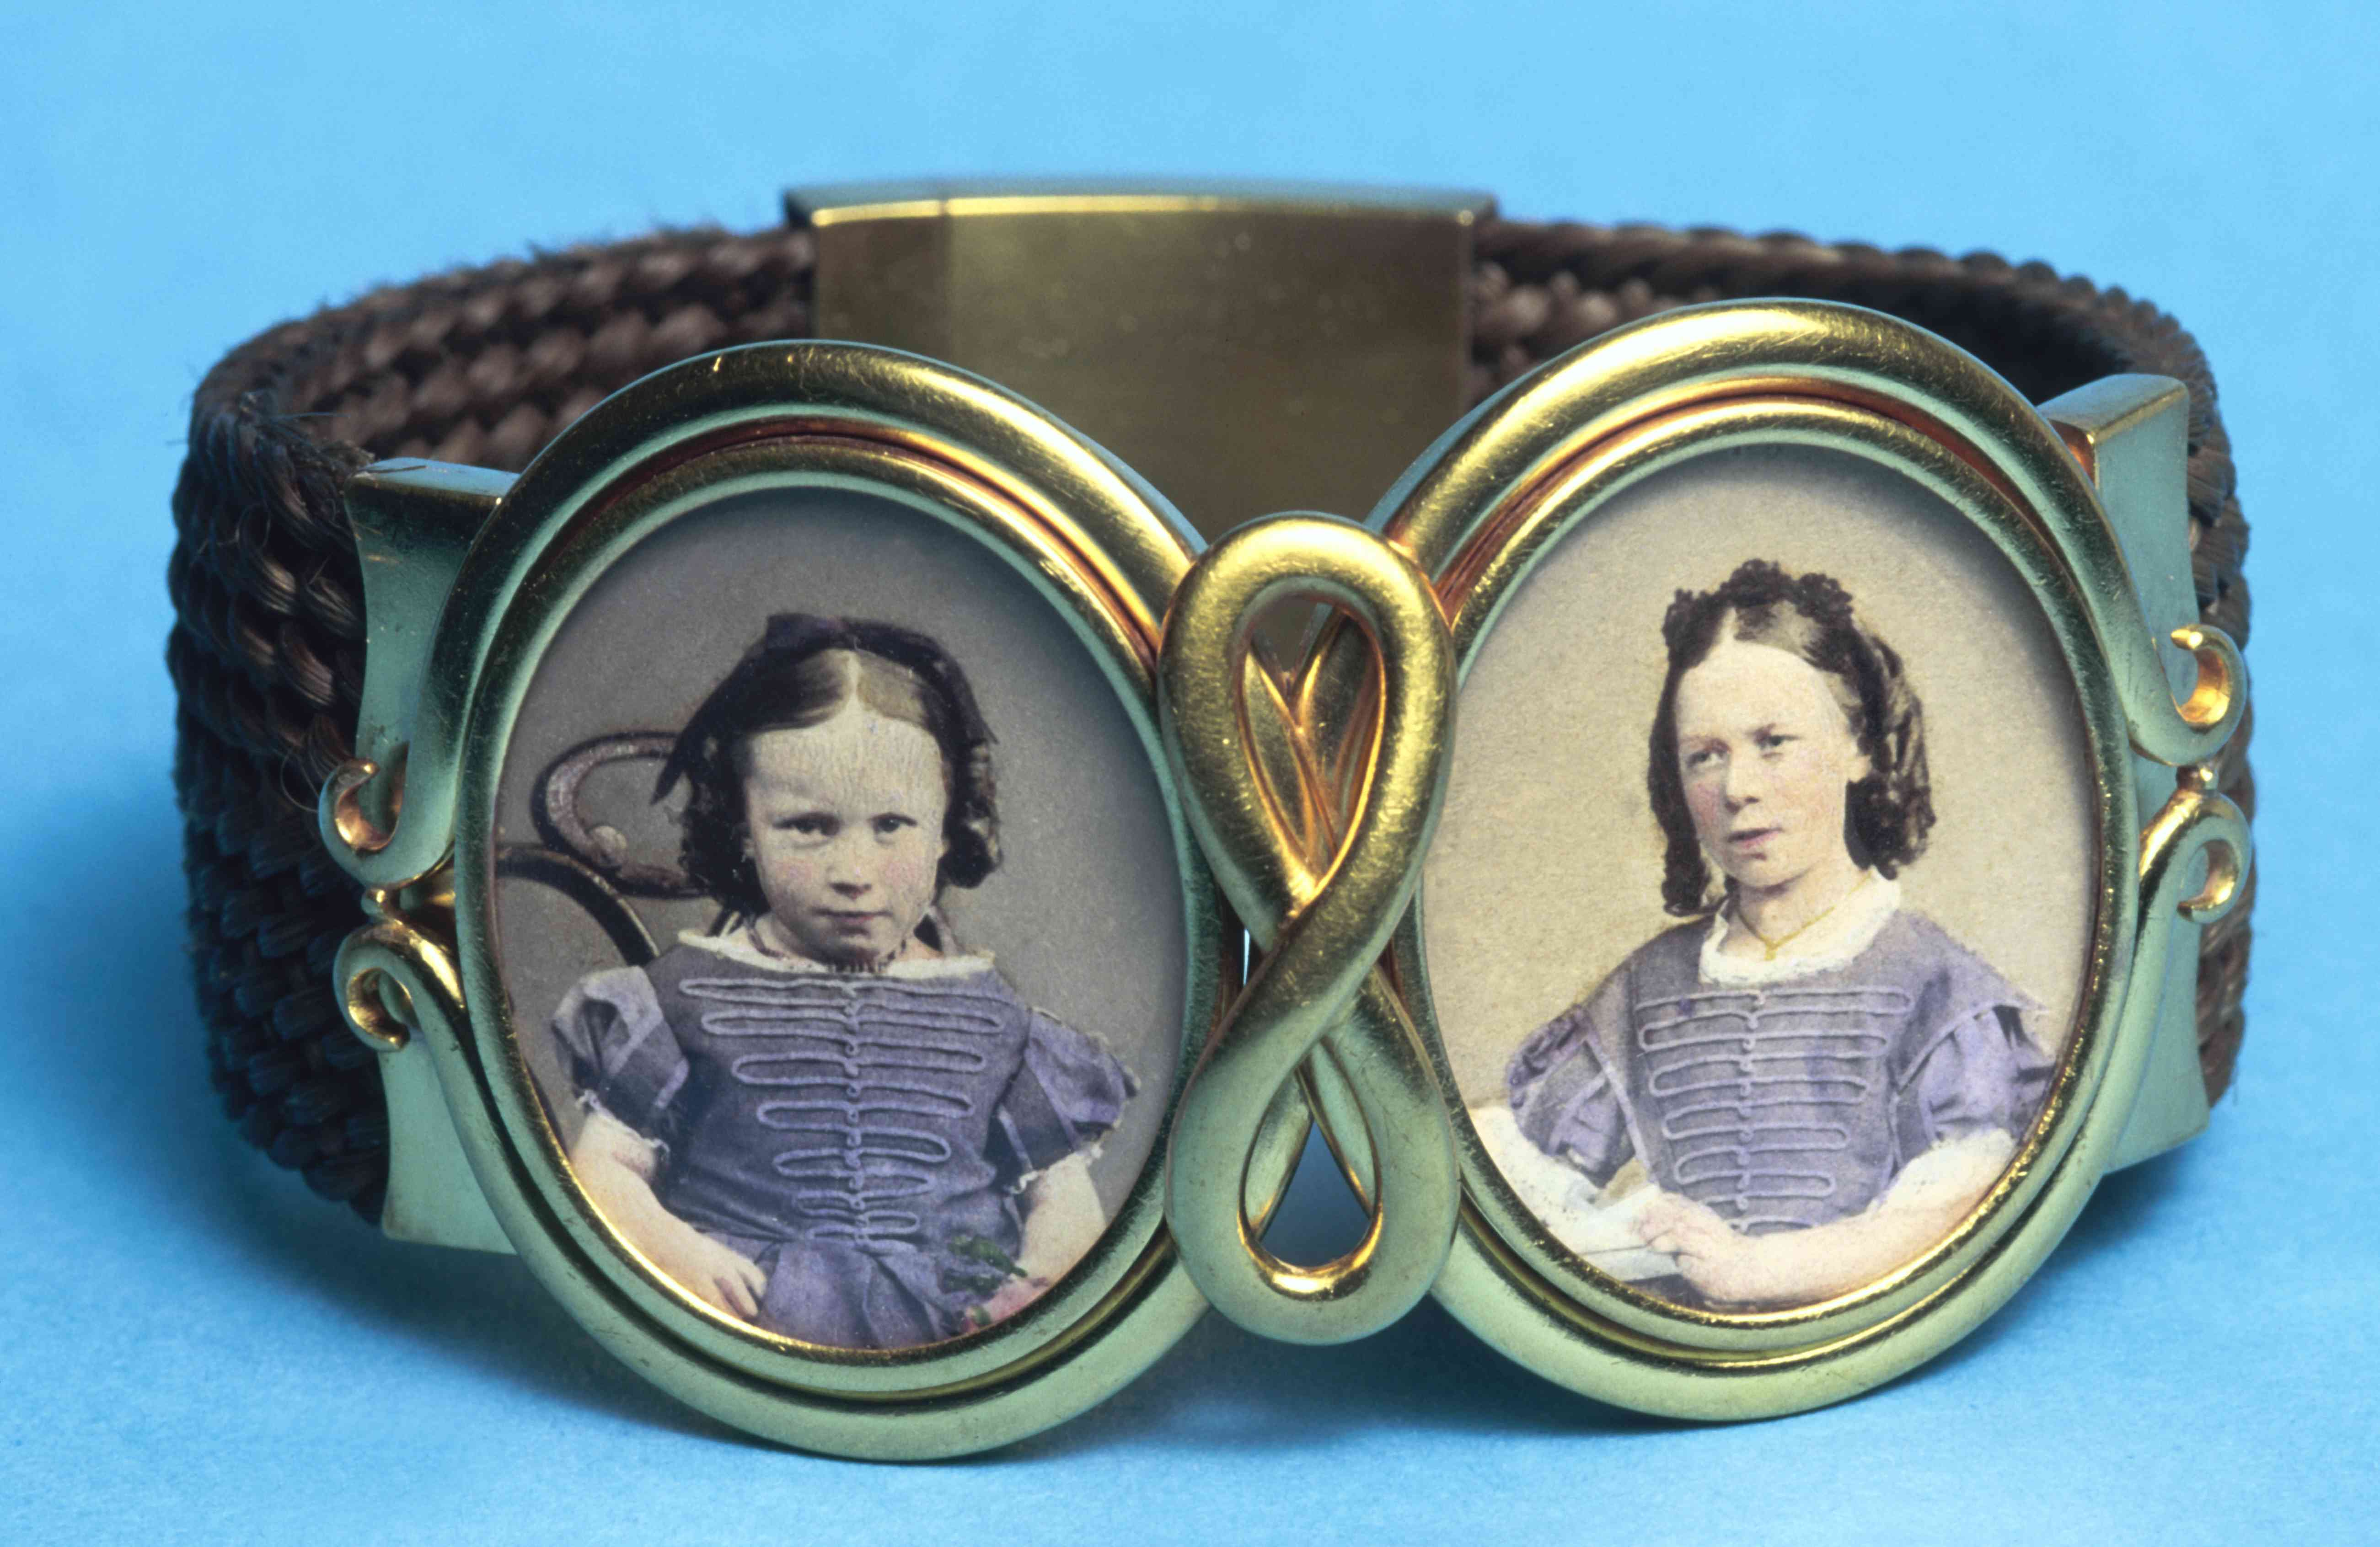 A Victorian bracelet with a band of woven hair, c1865.